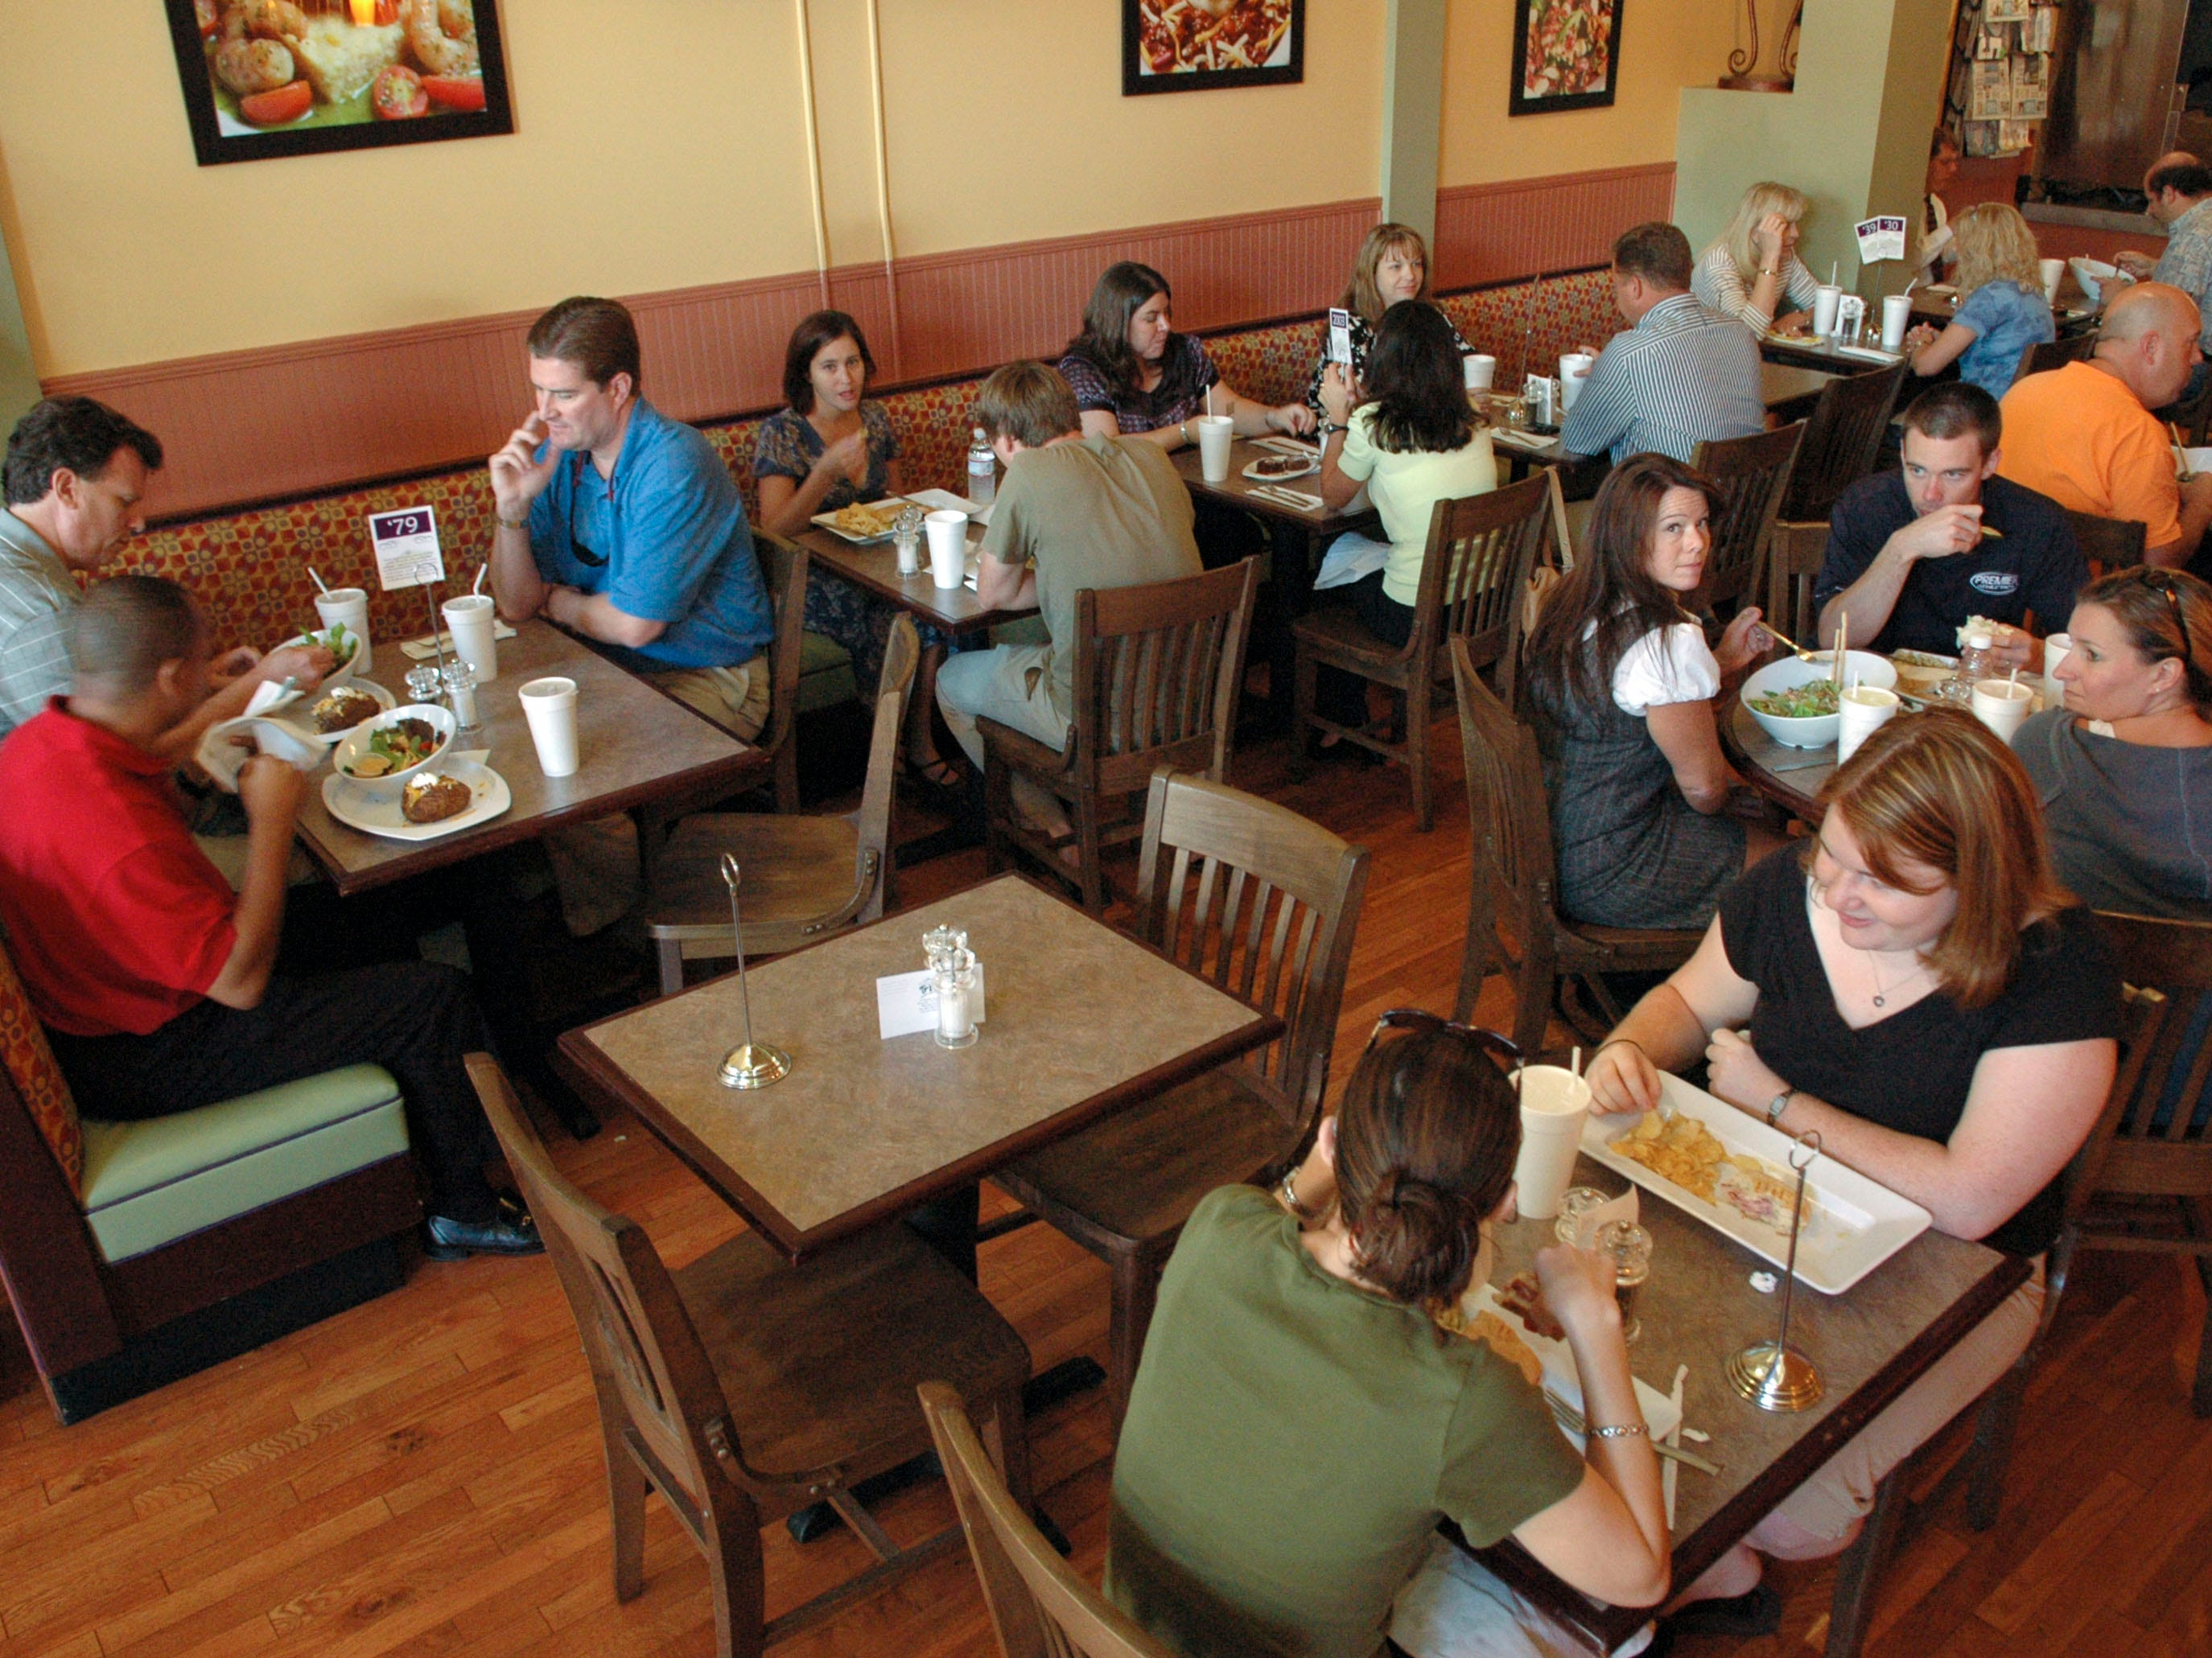 The lunch crowd fills the Trio Cafe on Market Square Mall in 2007. Trio Cafe on Market Square Mall in downtown Knoxville won as best new restaurant in East Tennessee's Best reader's poll.